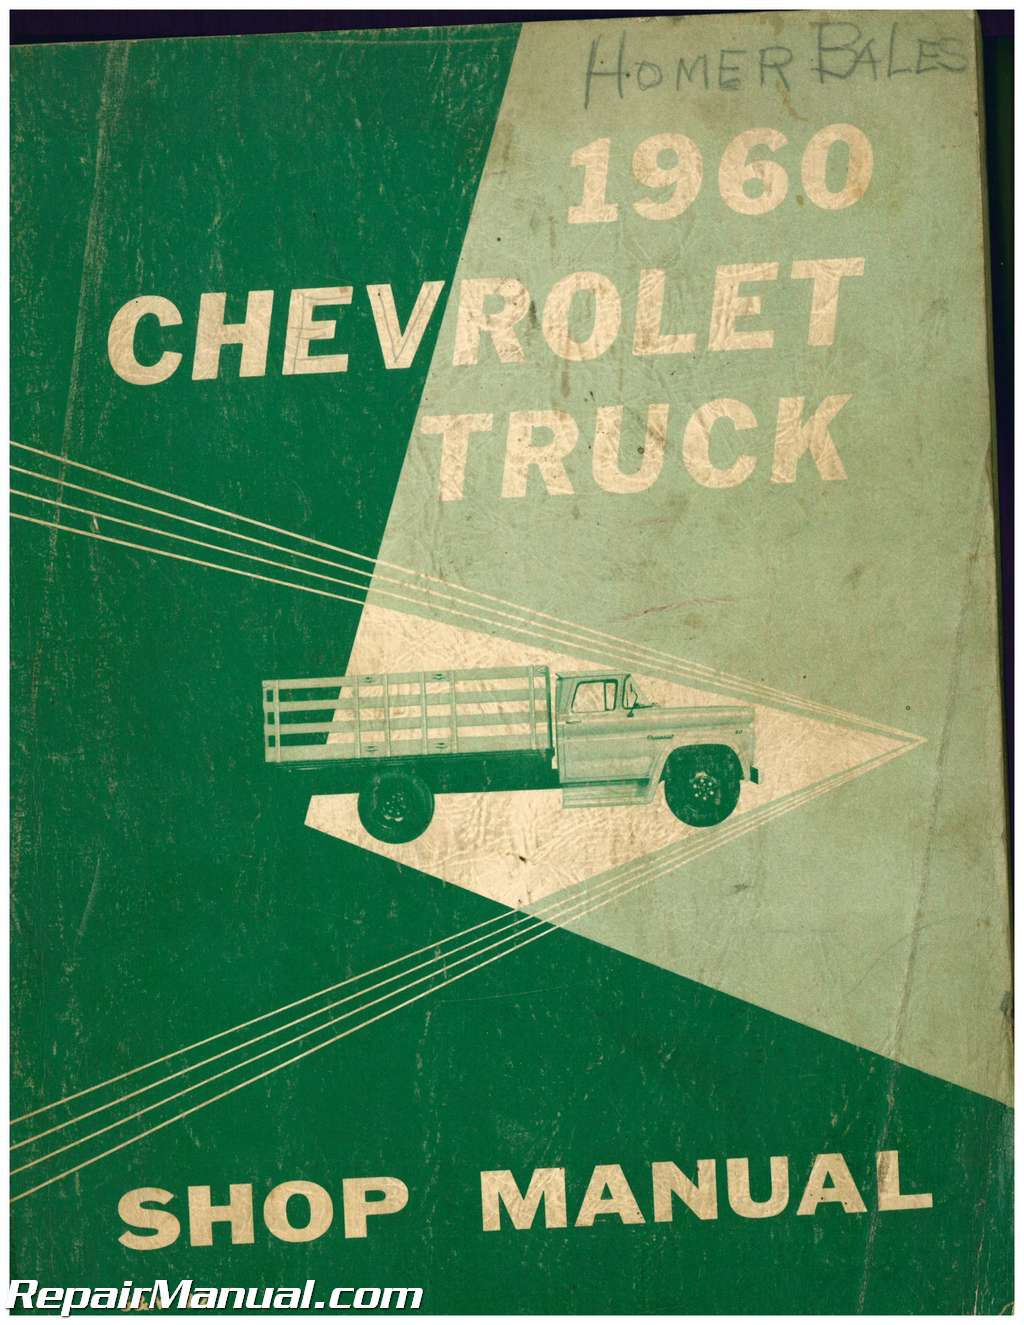 used 1960 chevrolet truck shop manual rh repairmanual com used shop manniqins for salle in uk used shop mannequins for sale